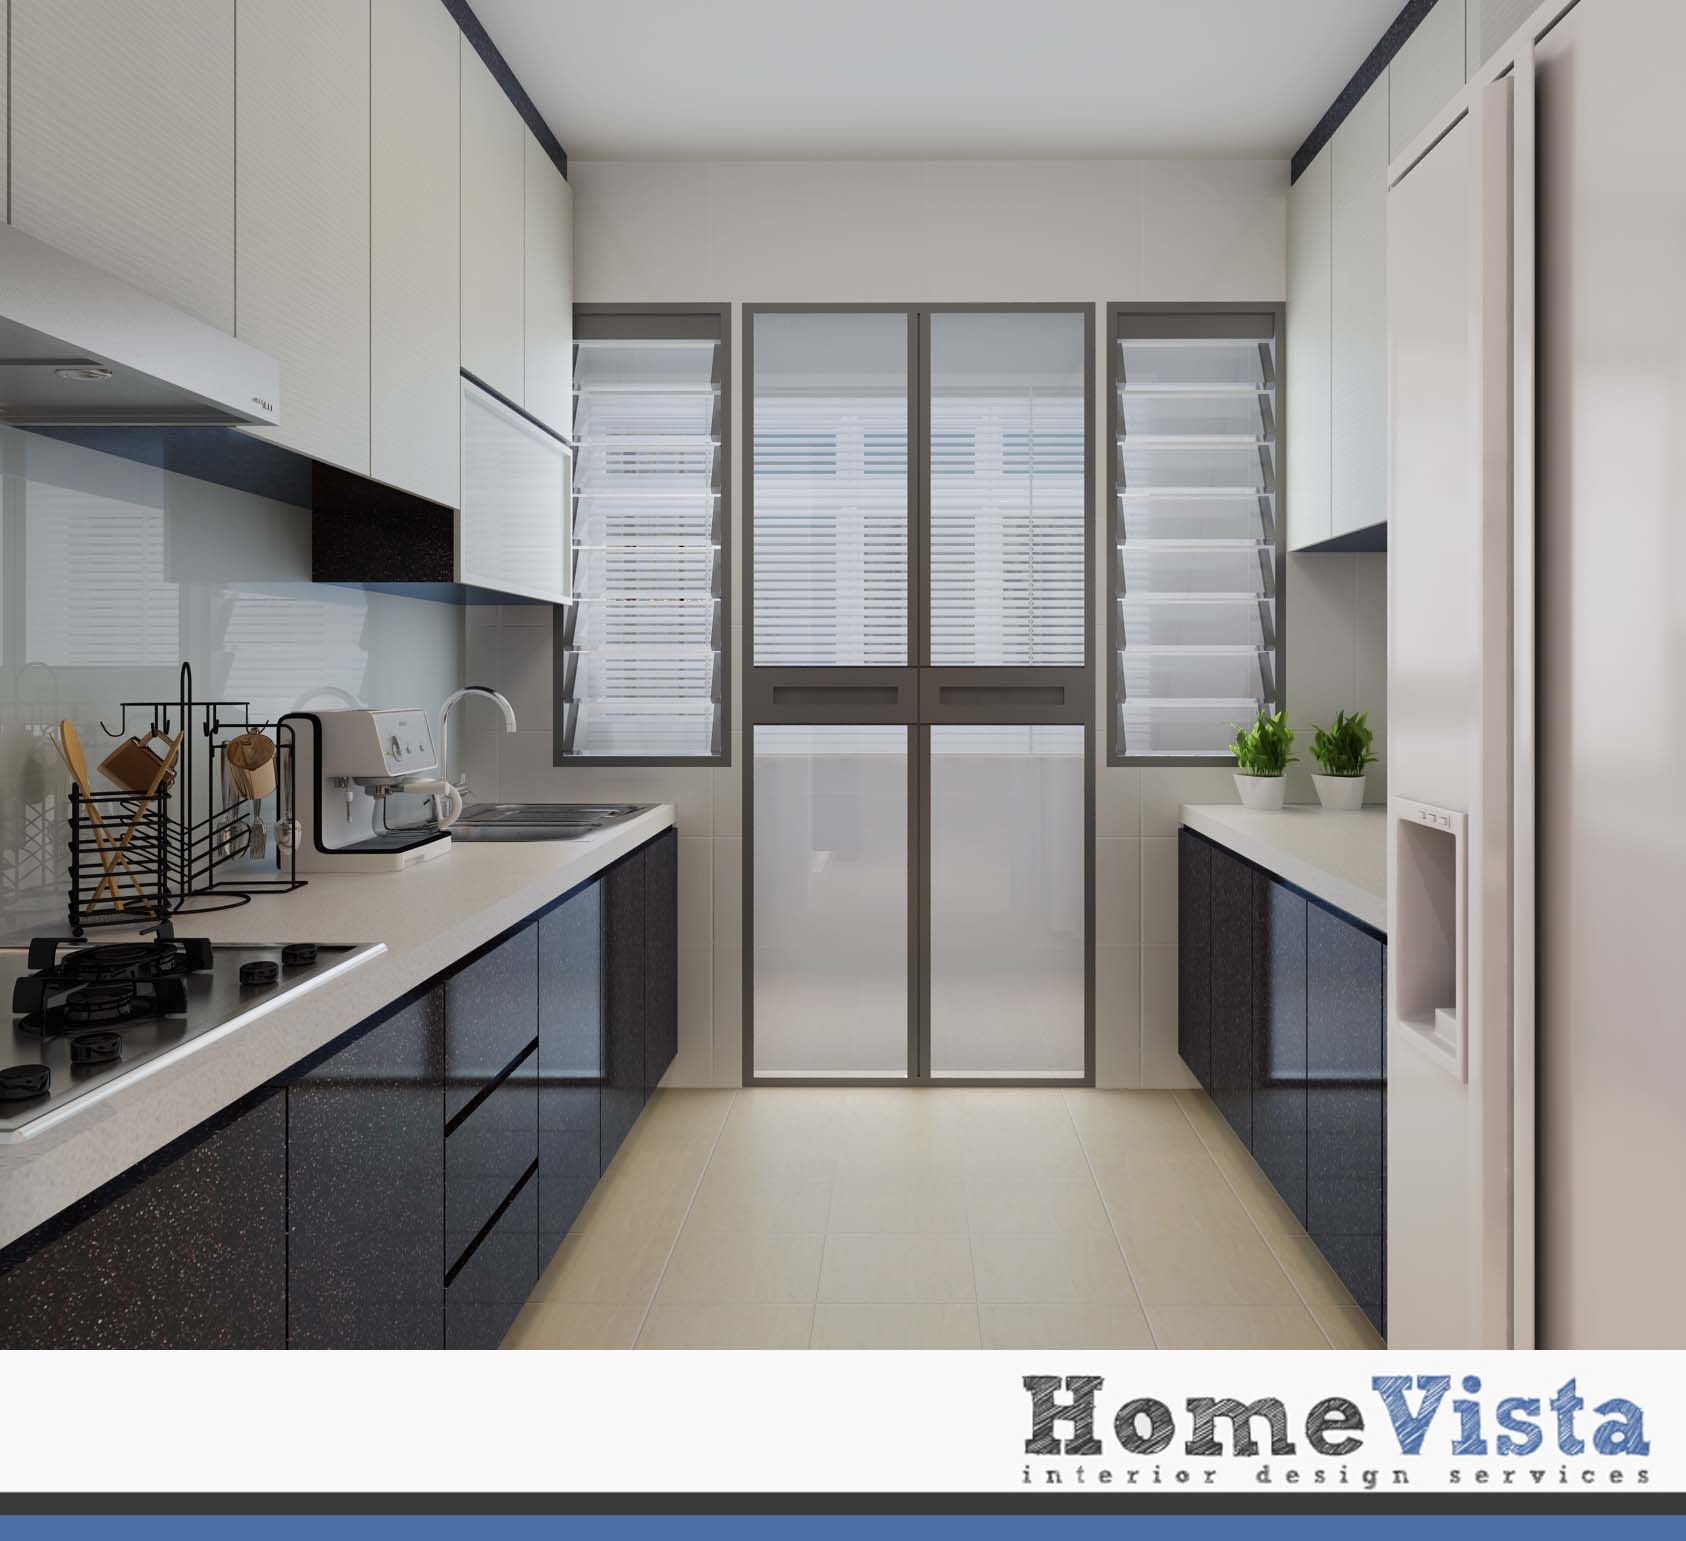 Kitchen Design Houston Endearing 4 Room Bto  Yishun Hdb Bto  Homevista  Interior  Pinterest 2018